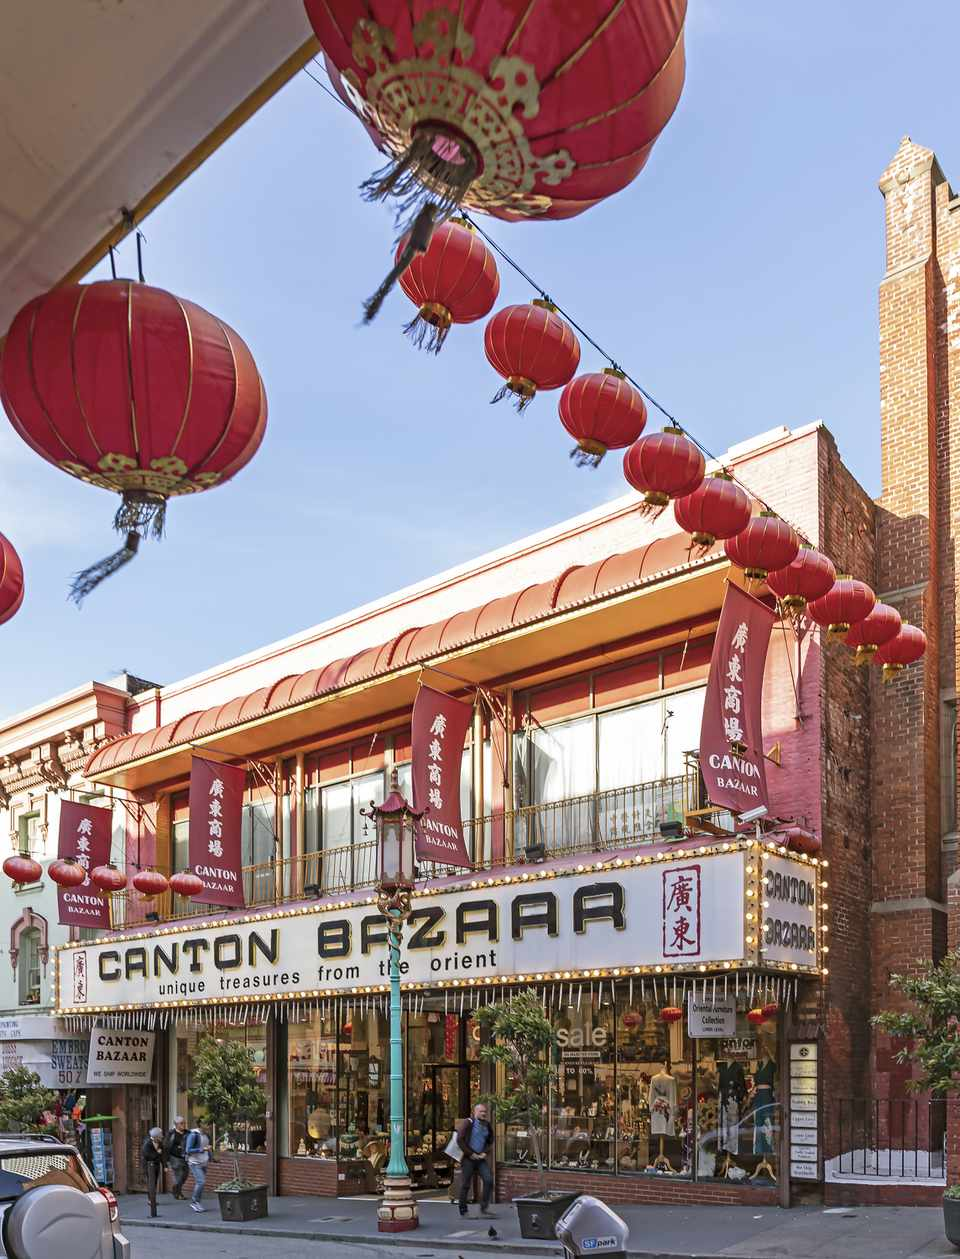 A general store with paper lanterns out front in Chinatown